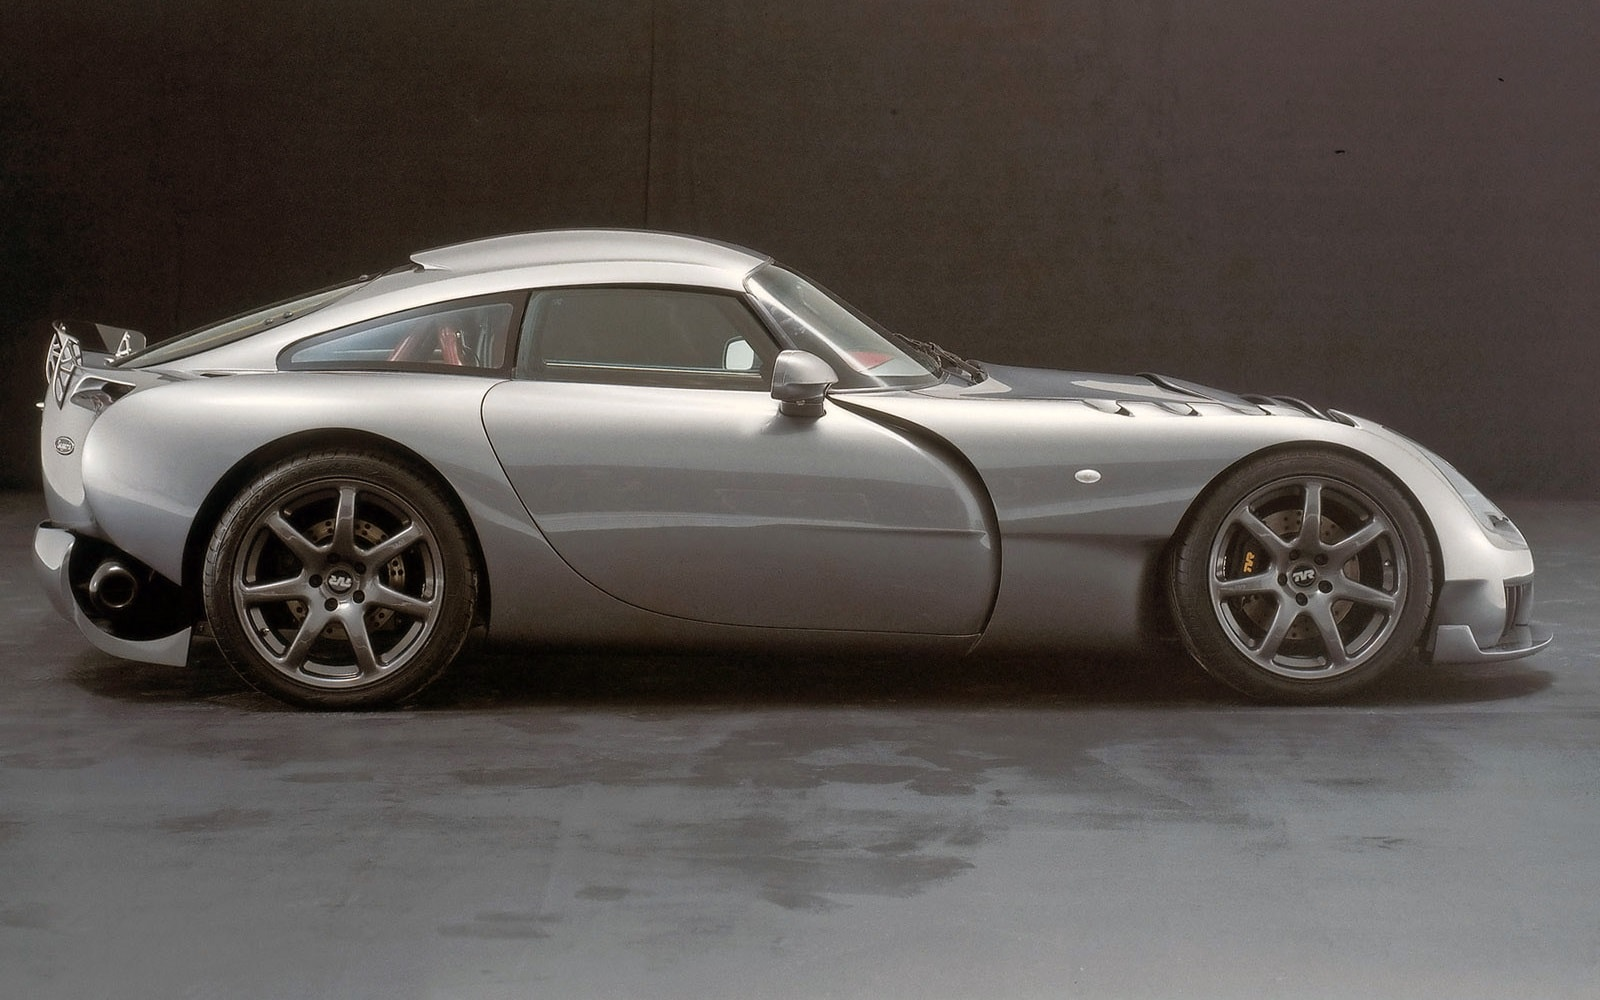 2005 TVR Sagaris Wallpapers hd